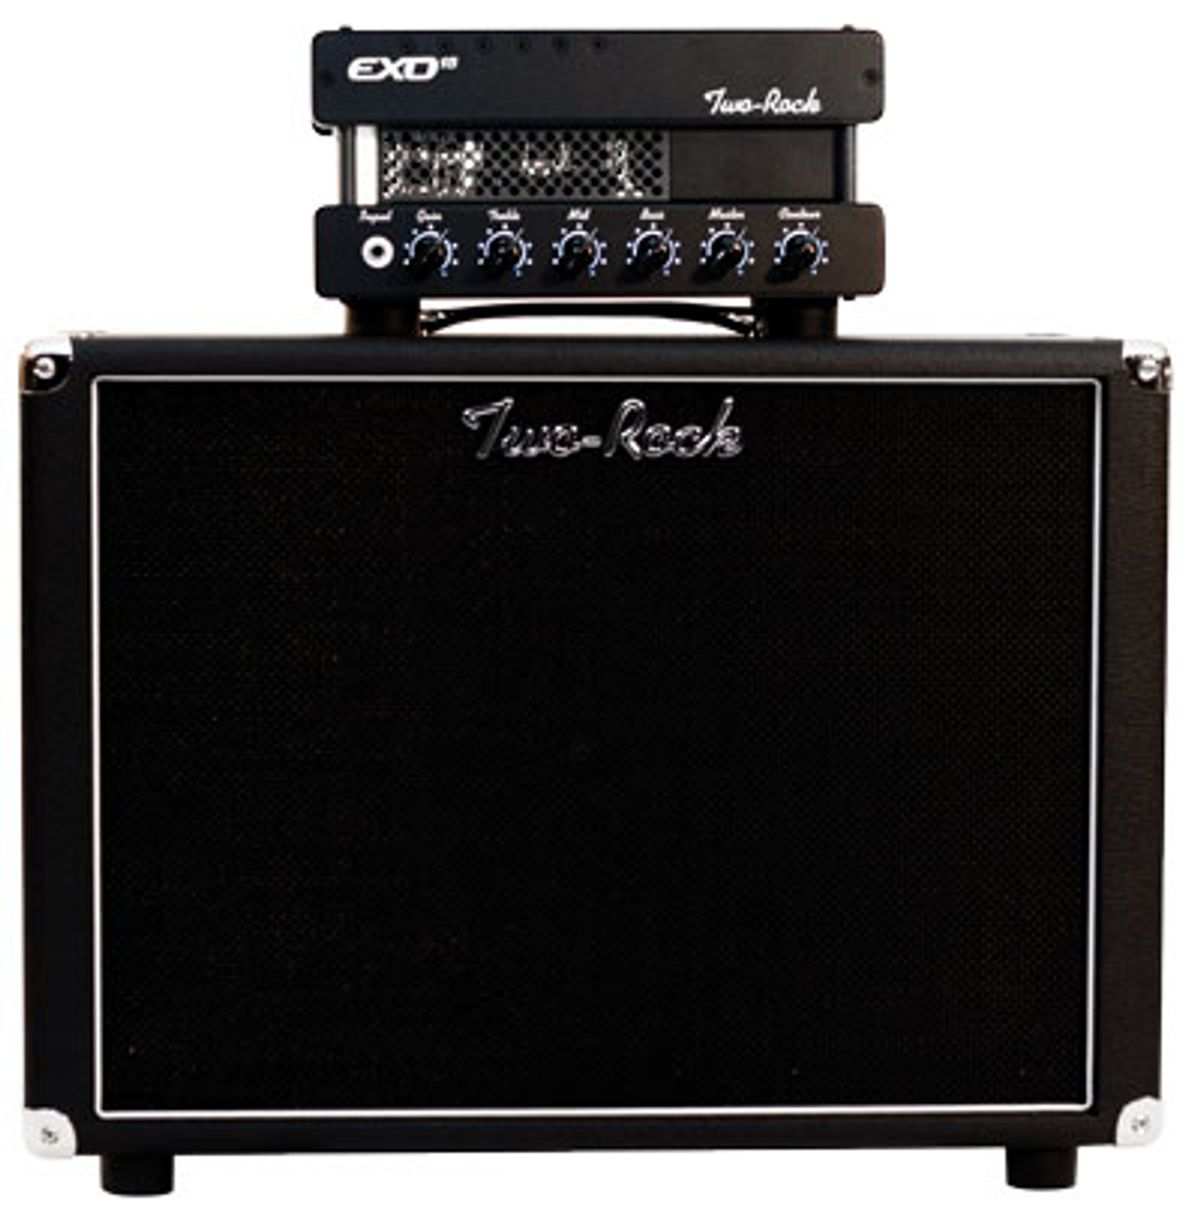 Two-Rock Exo-15 Amp Review